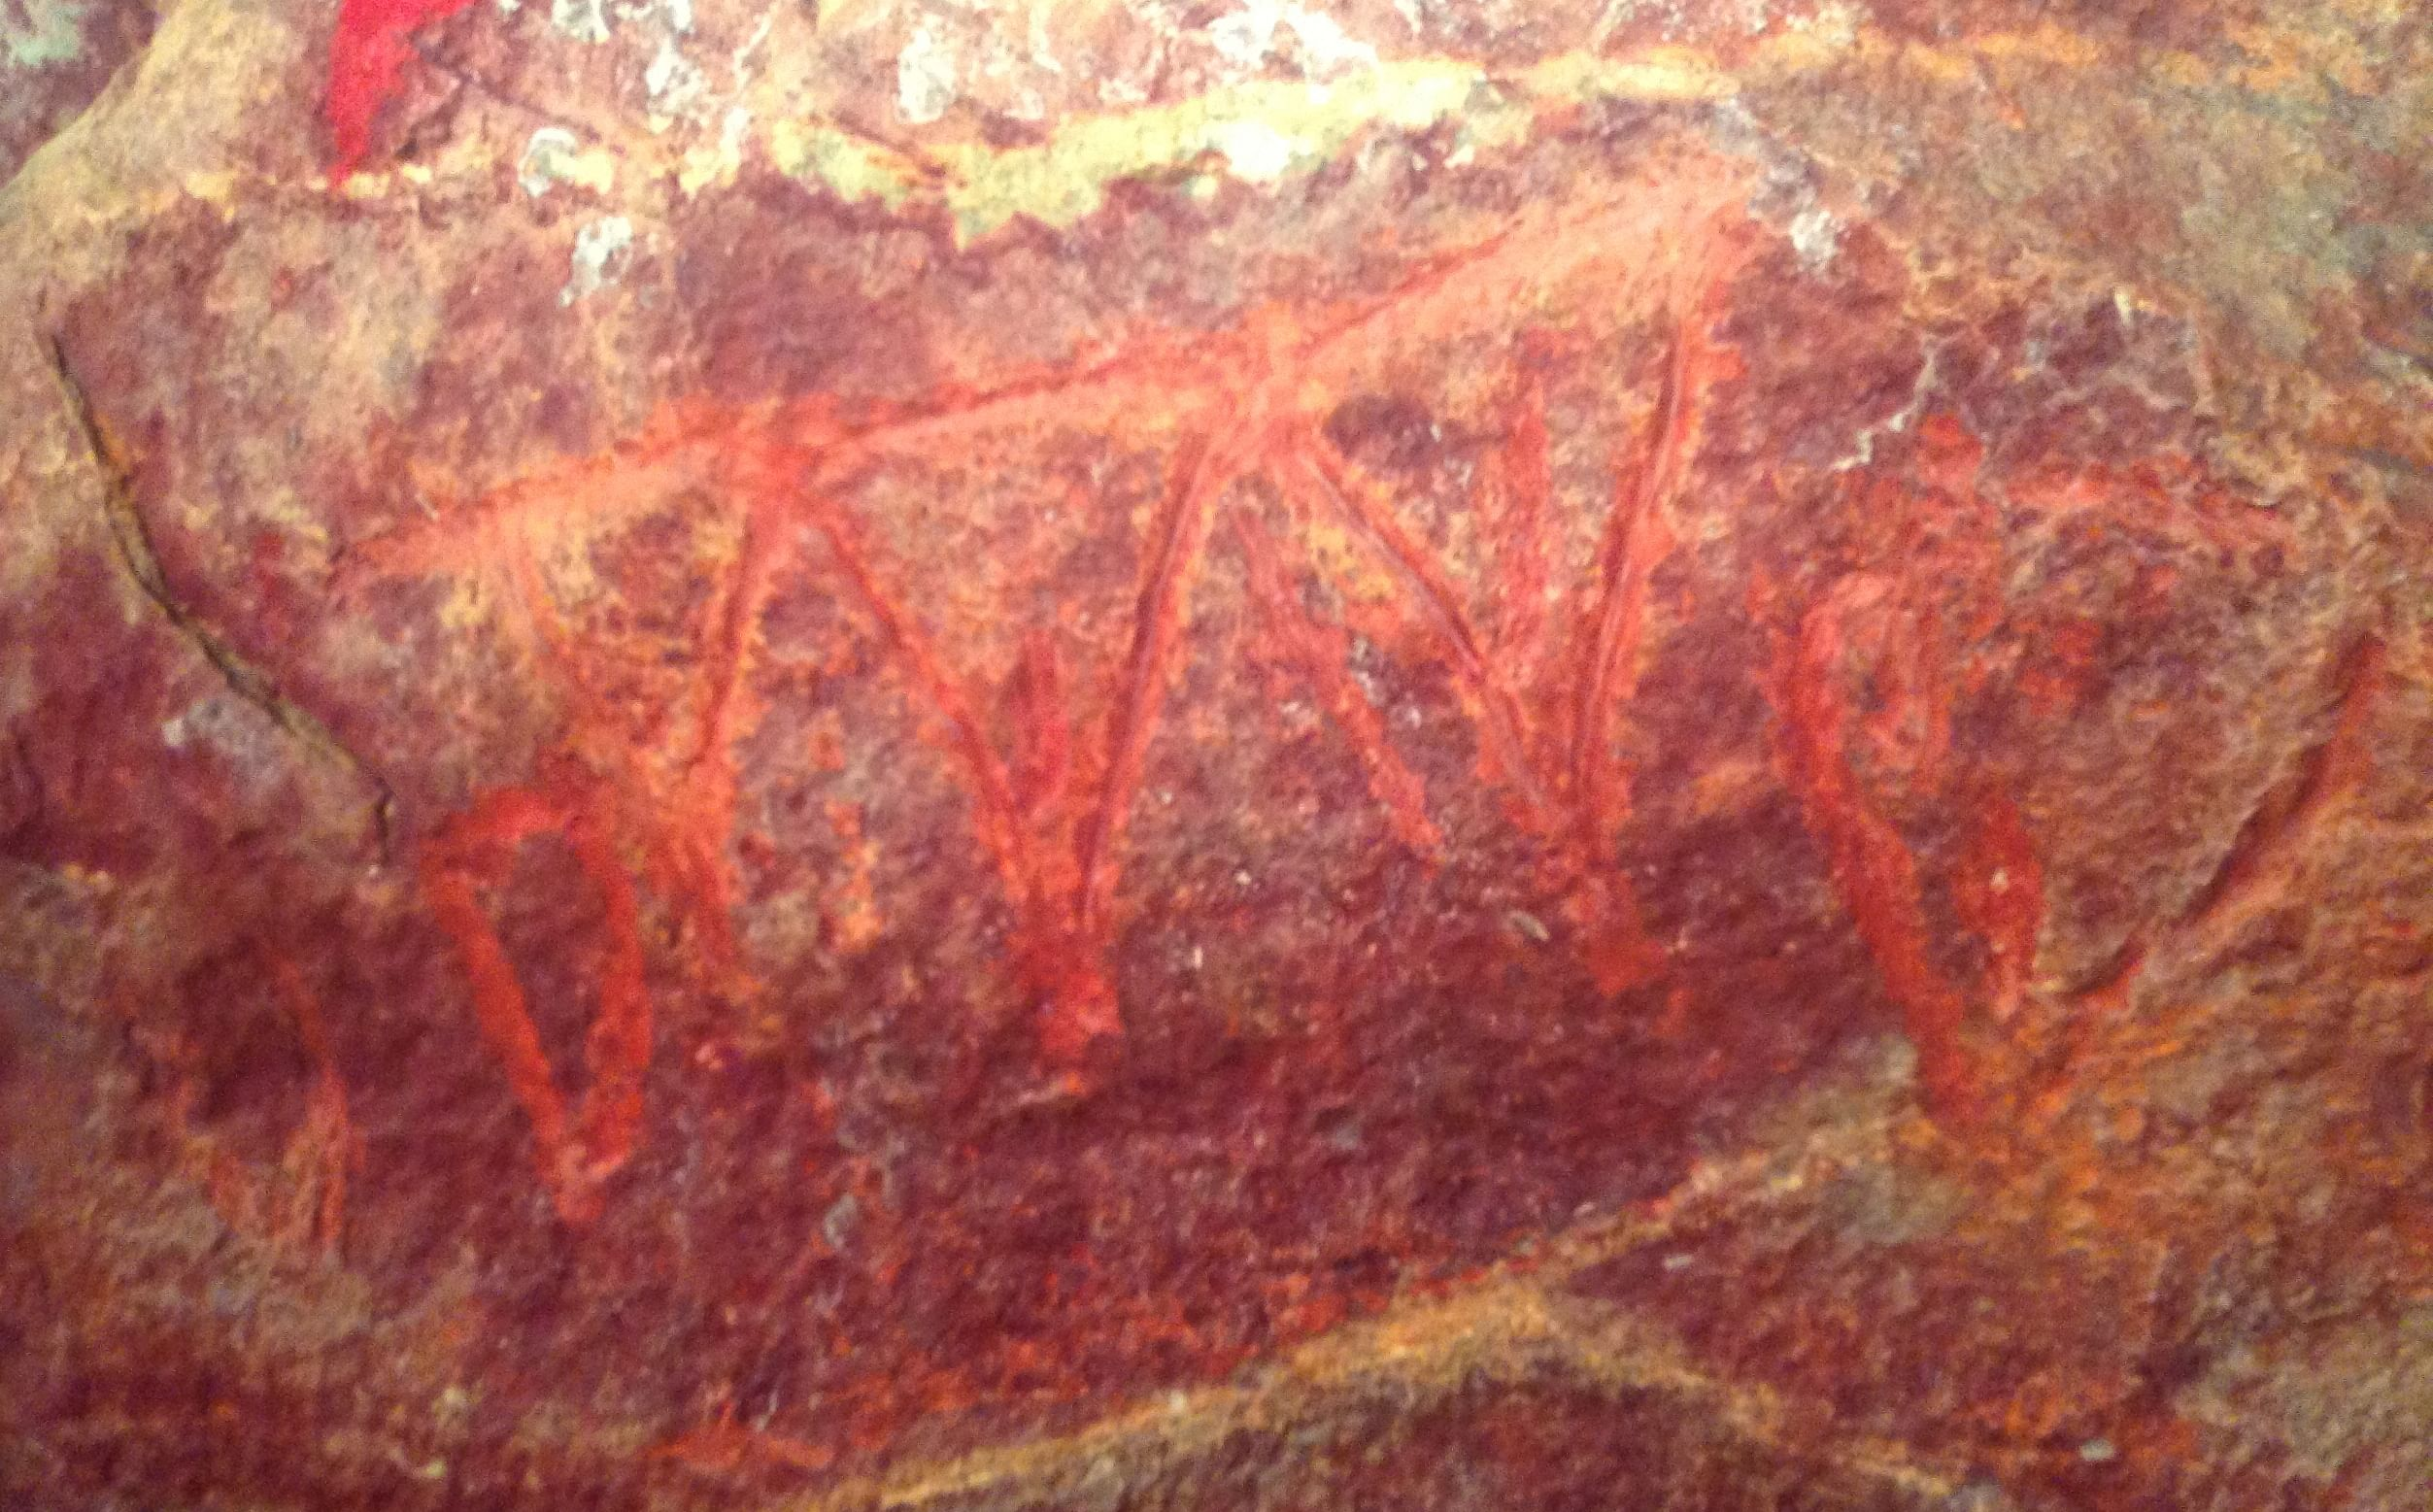 Petroglyph depicting female genitals from Odisha